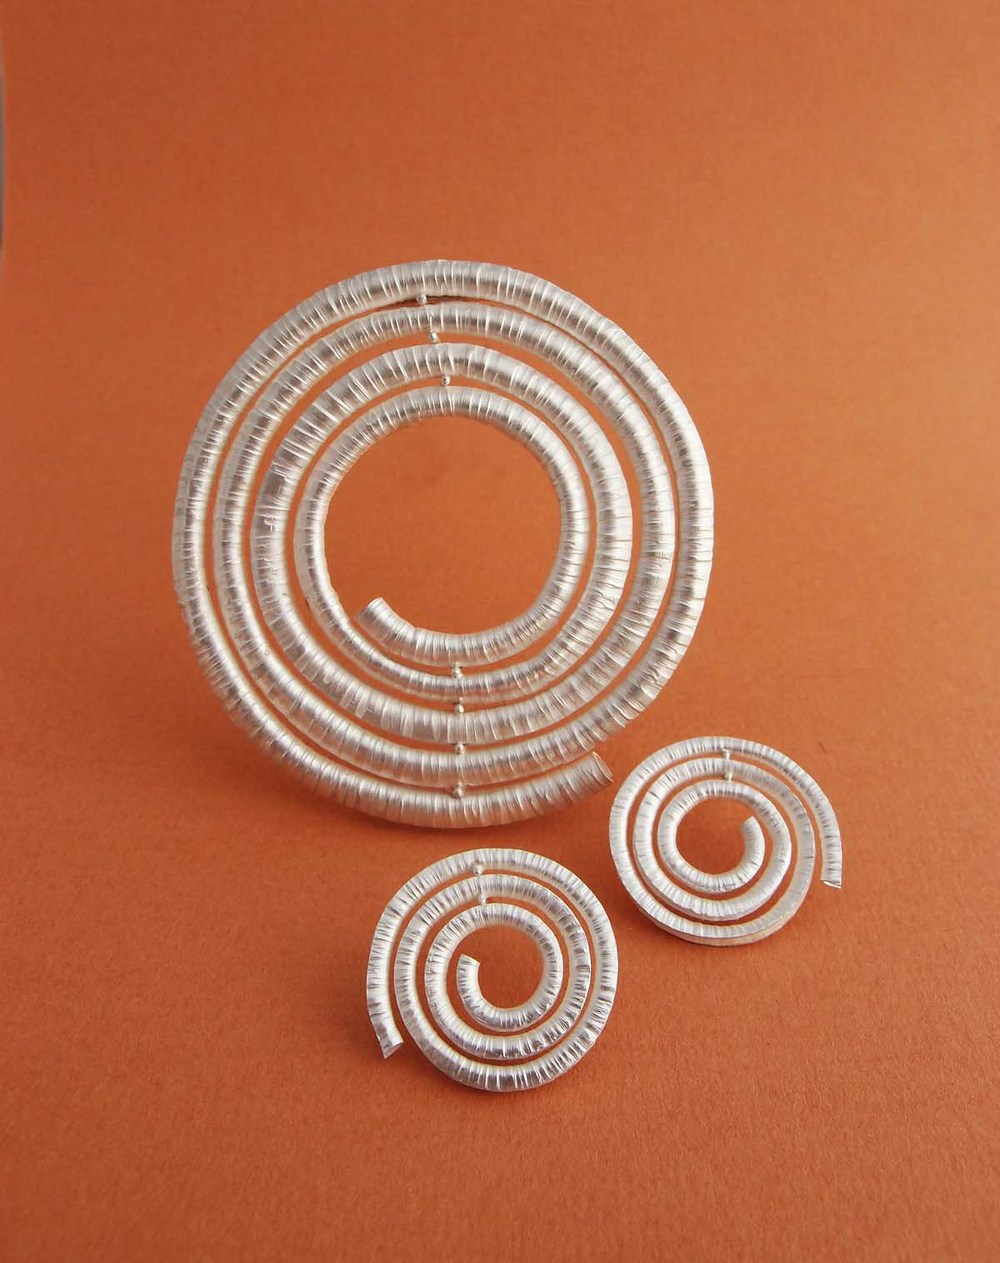 Silver spiral brooch and earrings